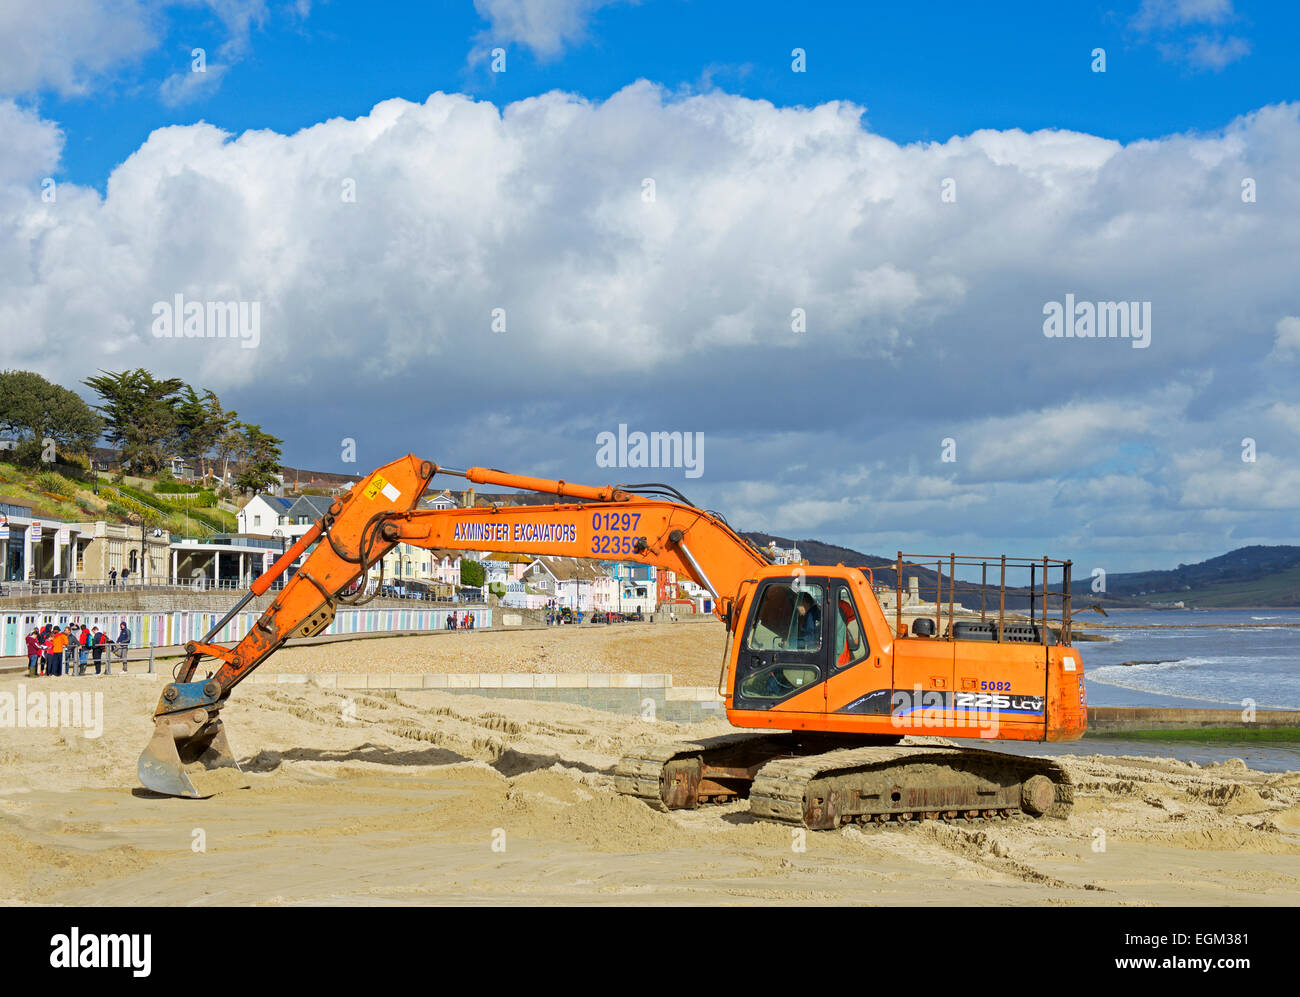 Levelling the beach at Lyme Regis with  a JCB digger, Dorset, England UK - Stock Image